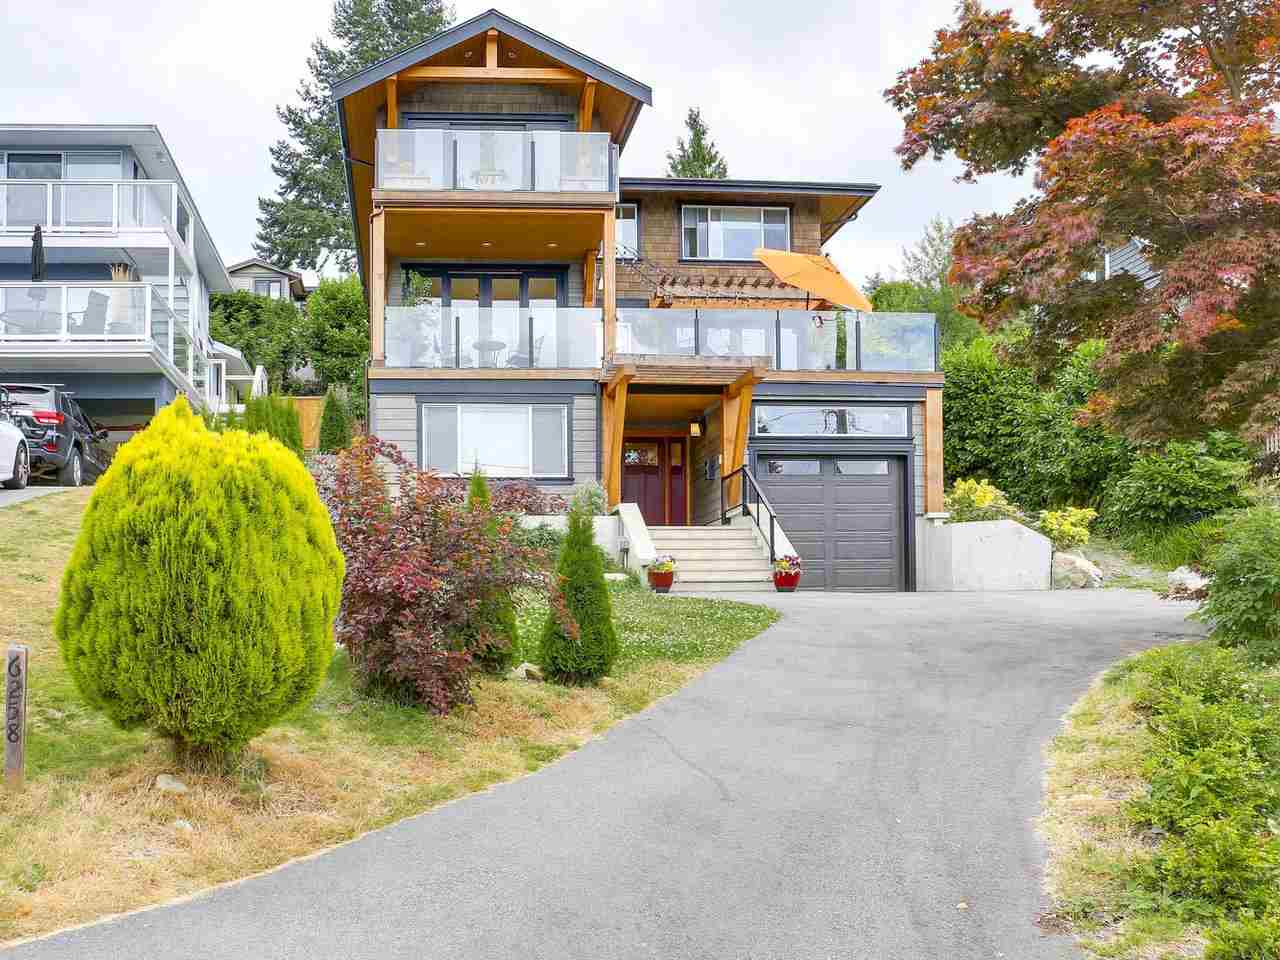 Removed: 6258 Wellington Avenue, West Vancouver, BC - Removed on 2017-11-30 14:08:16